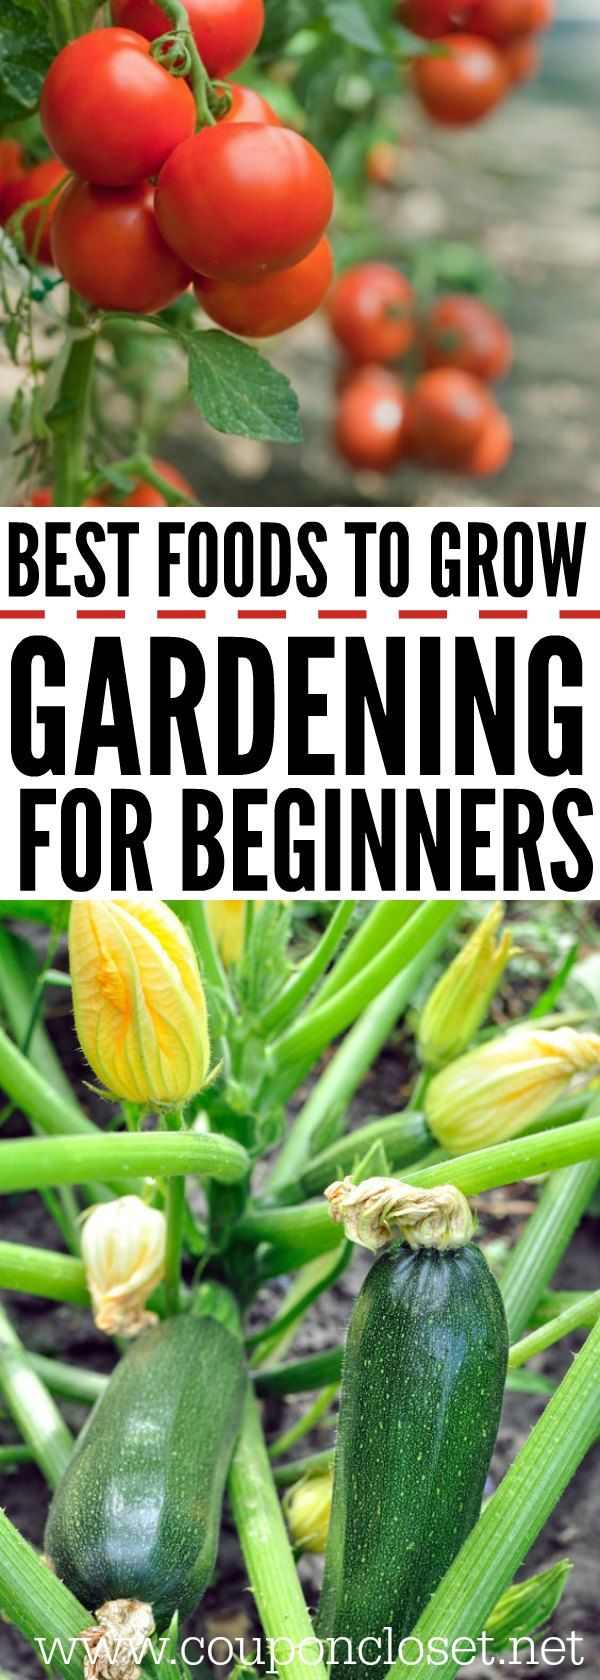 1290 Best Gardening Images On Pinterest Gardening